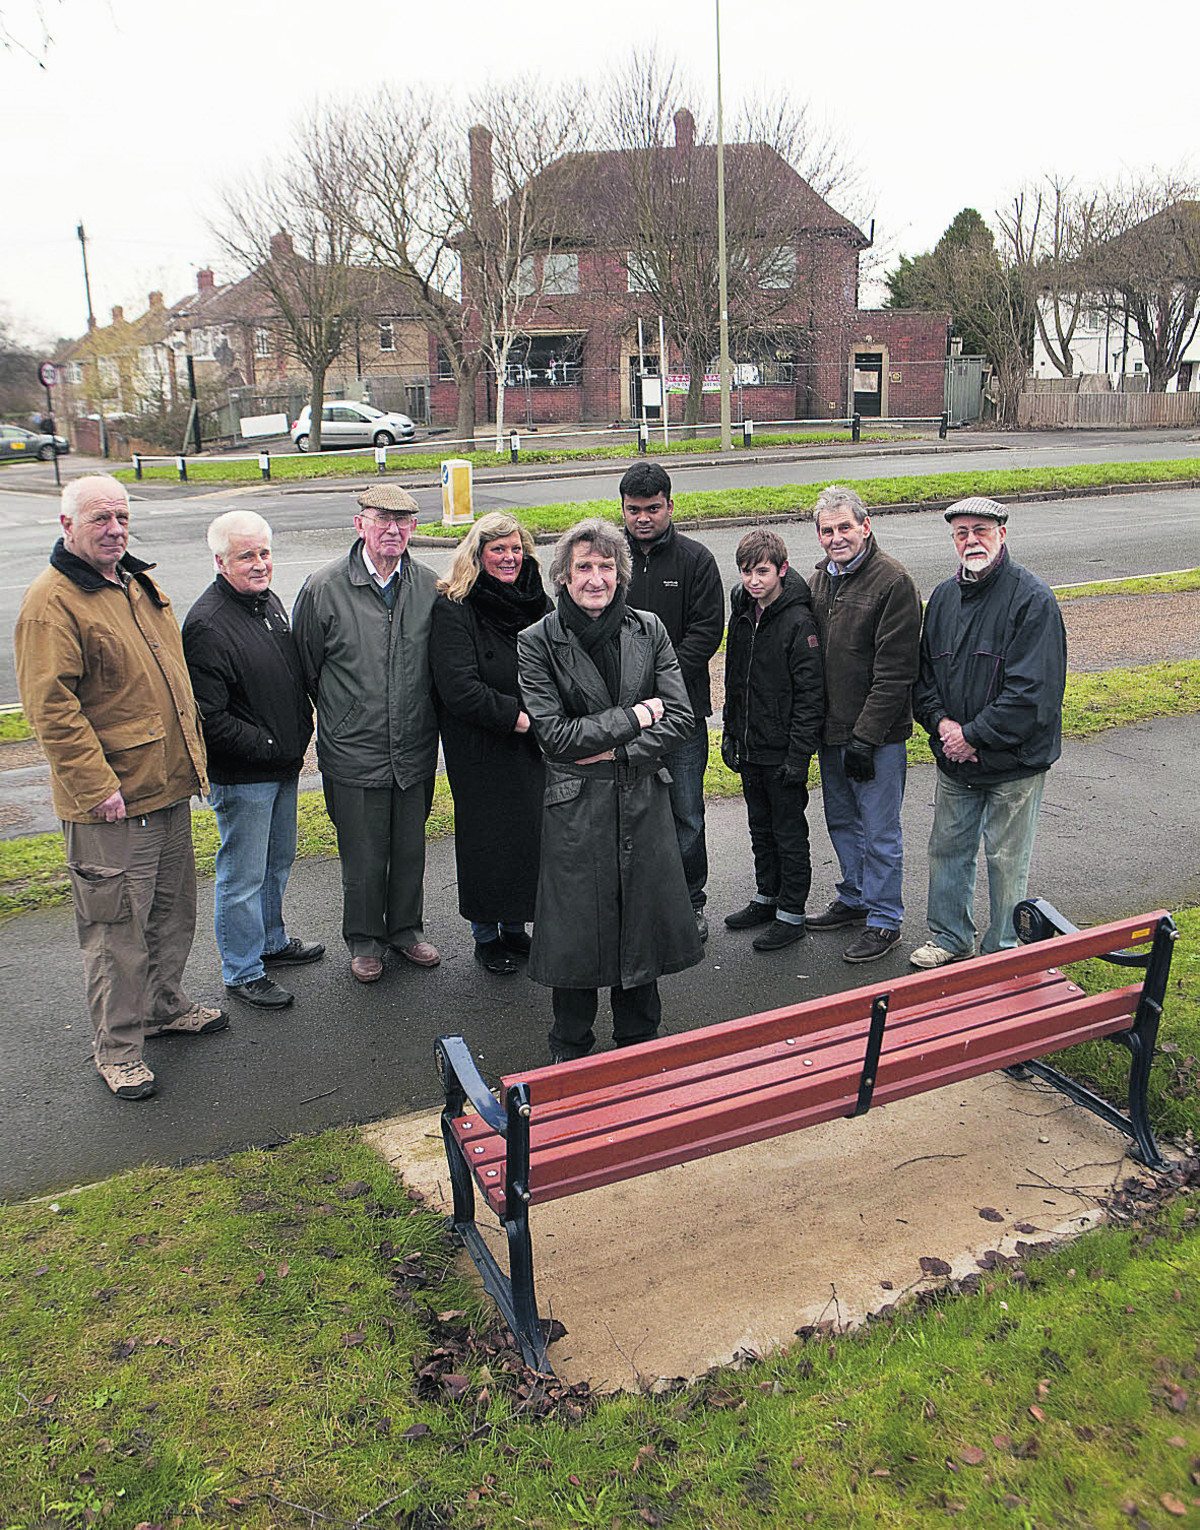 City councillor Mick Haines with local residents at the memorial bench